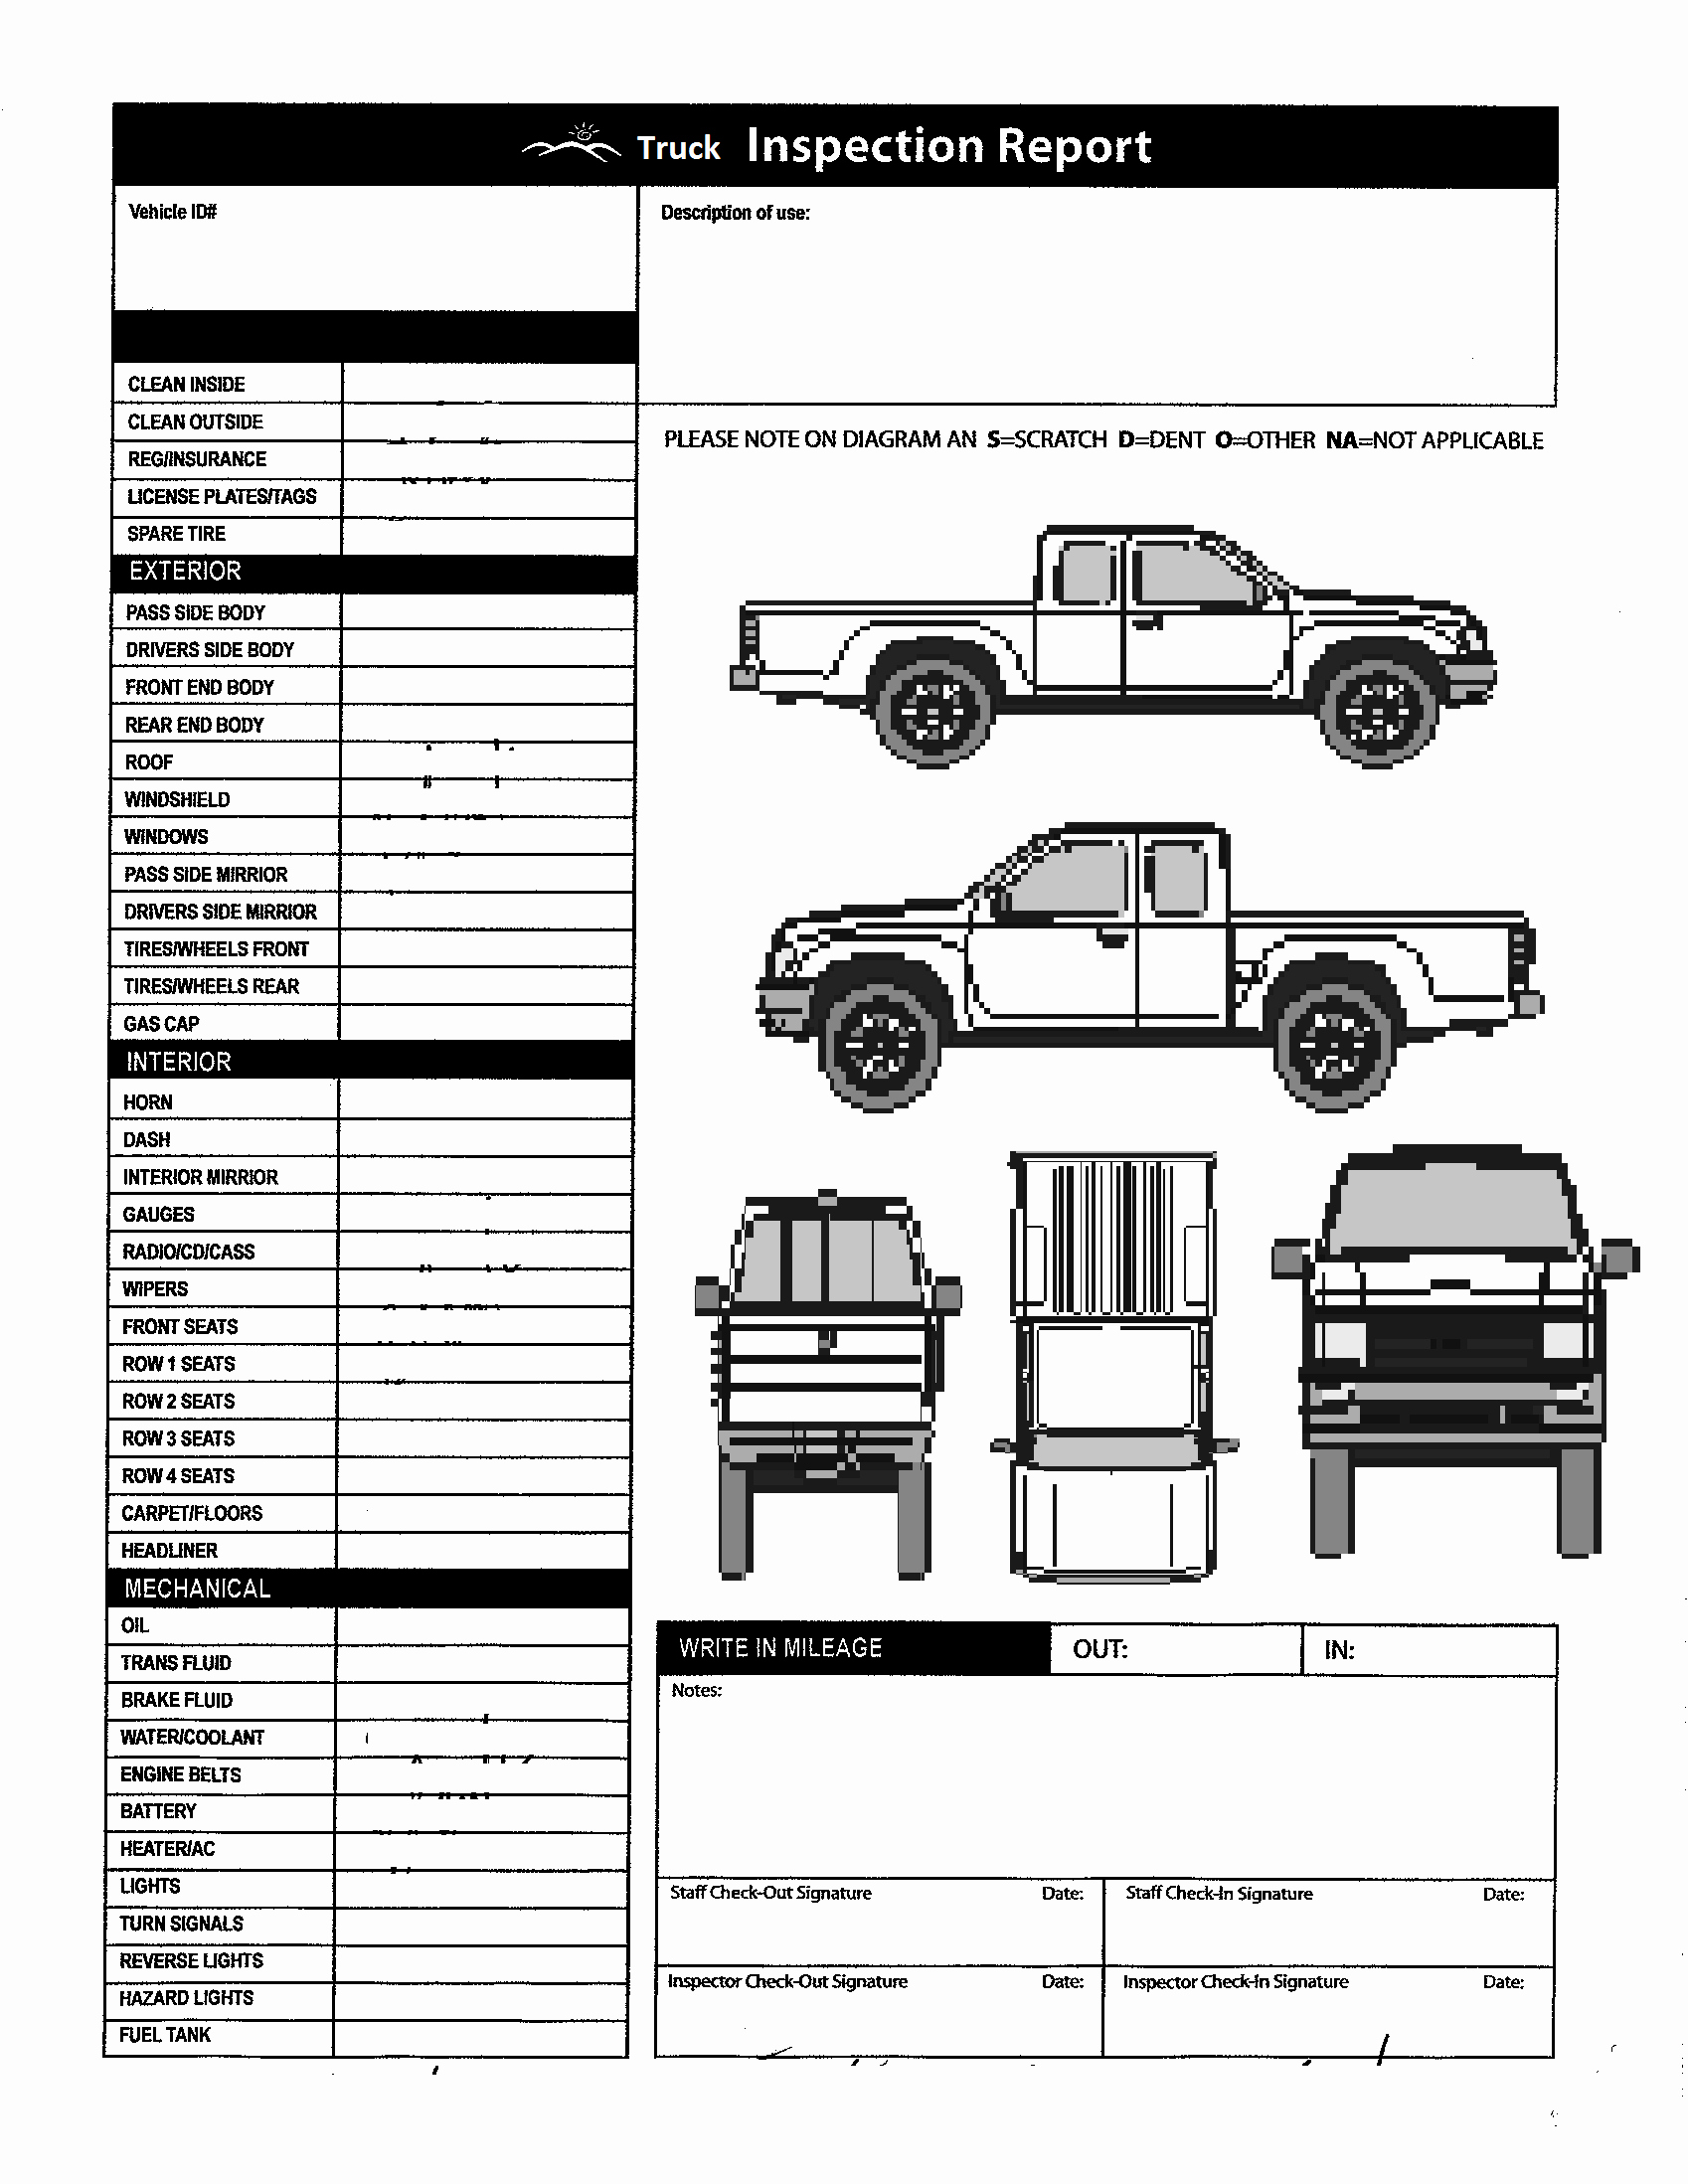 Truck Inspection form Template Unique Pickup Truck Inspection form Template Sketch Coloring Page